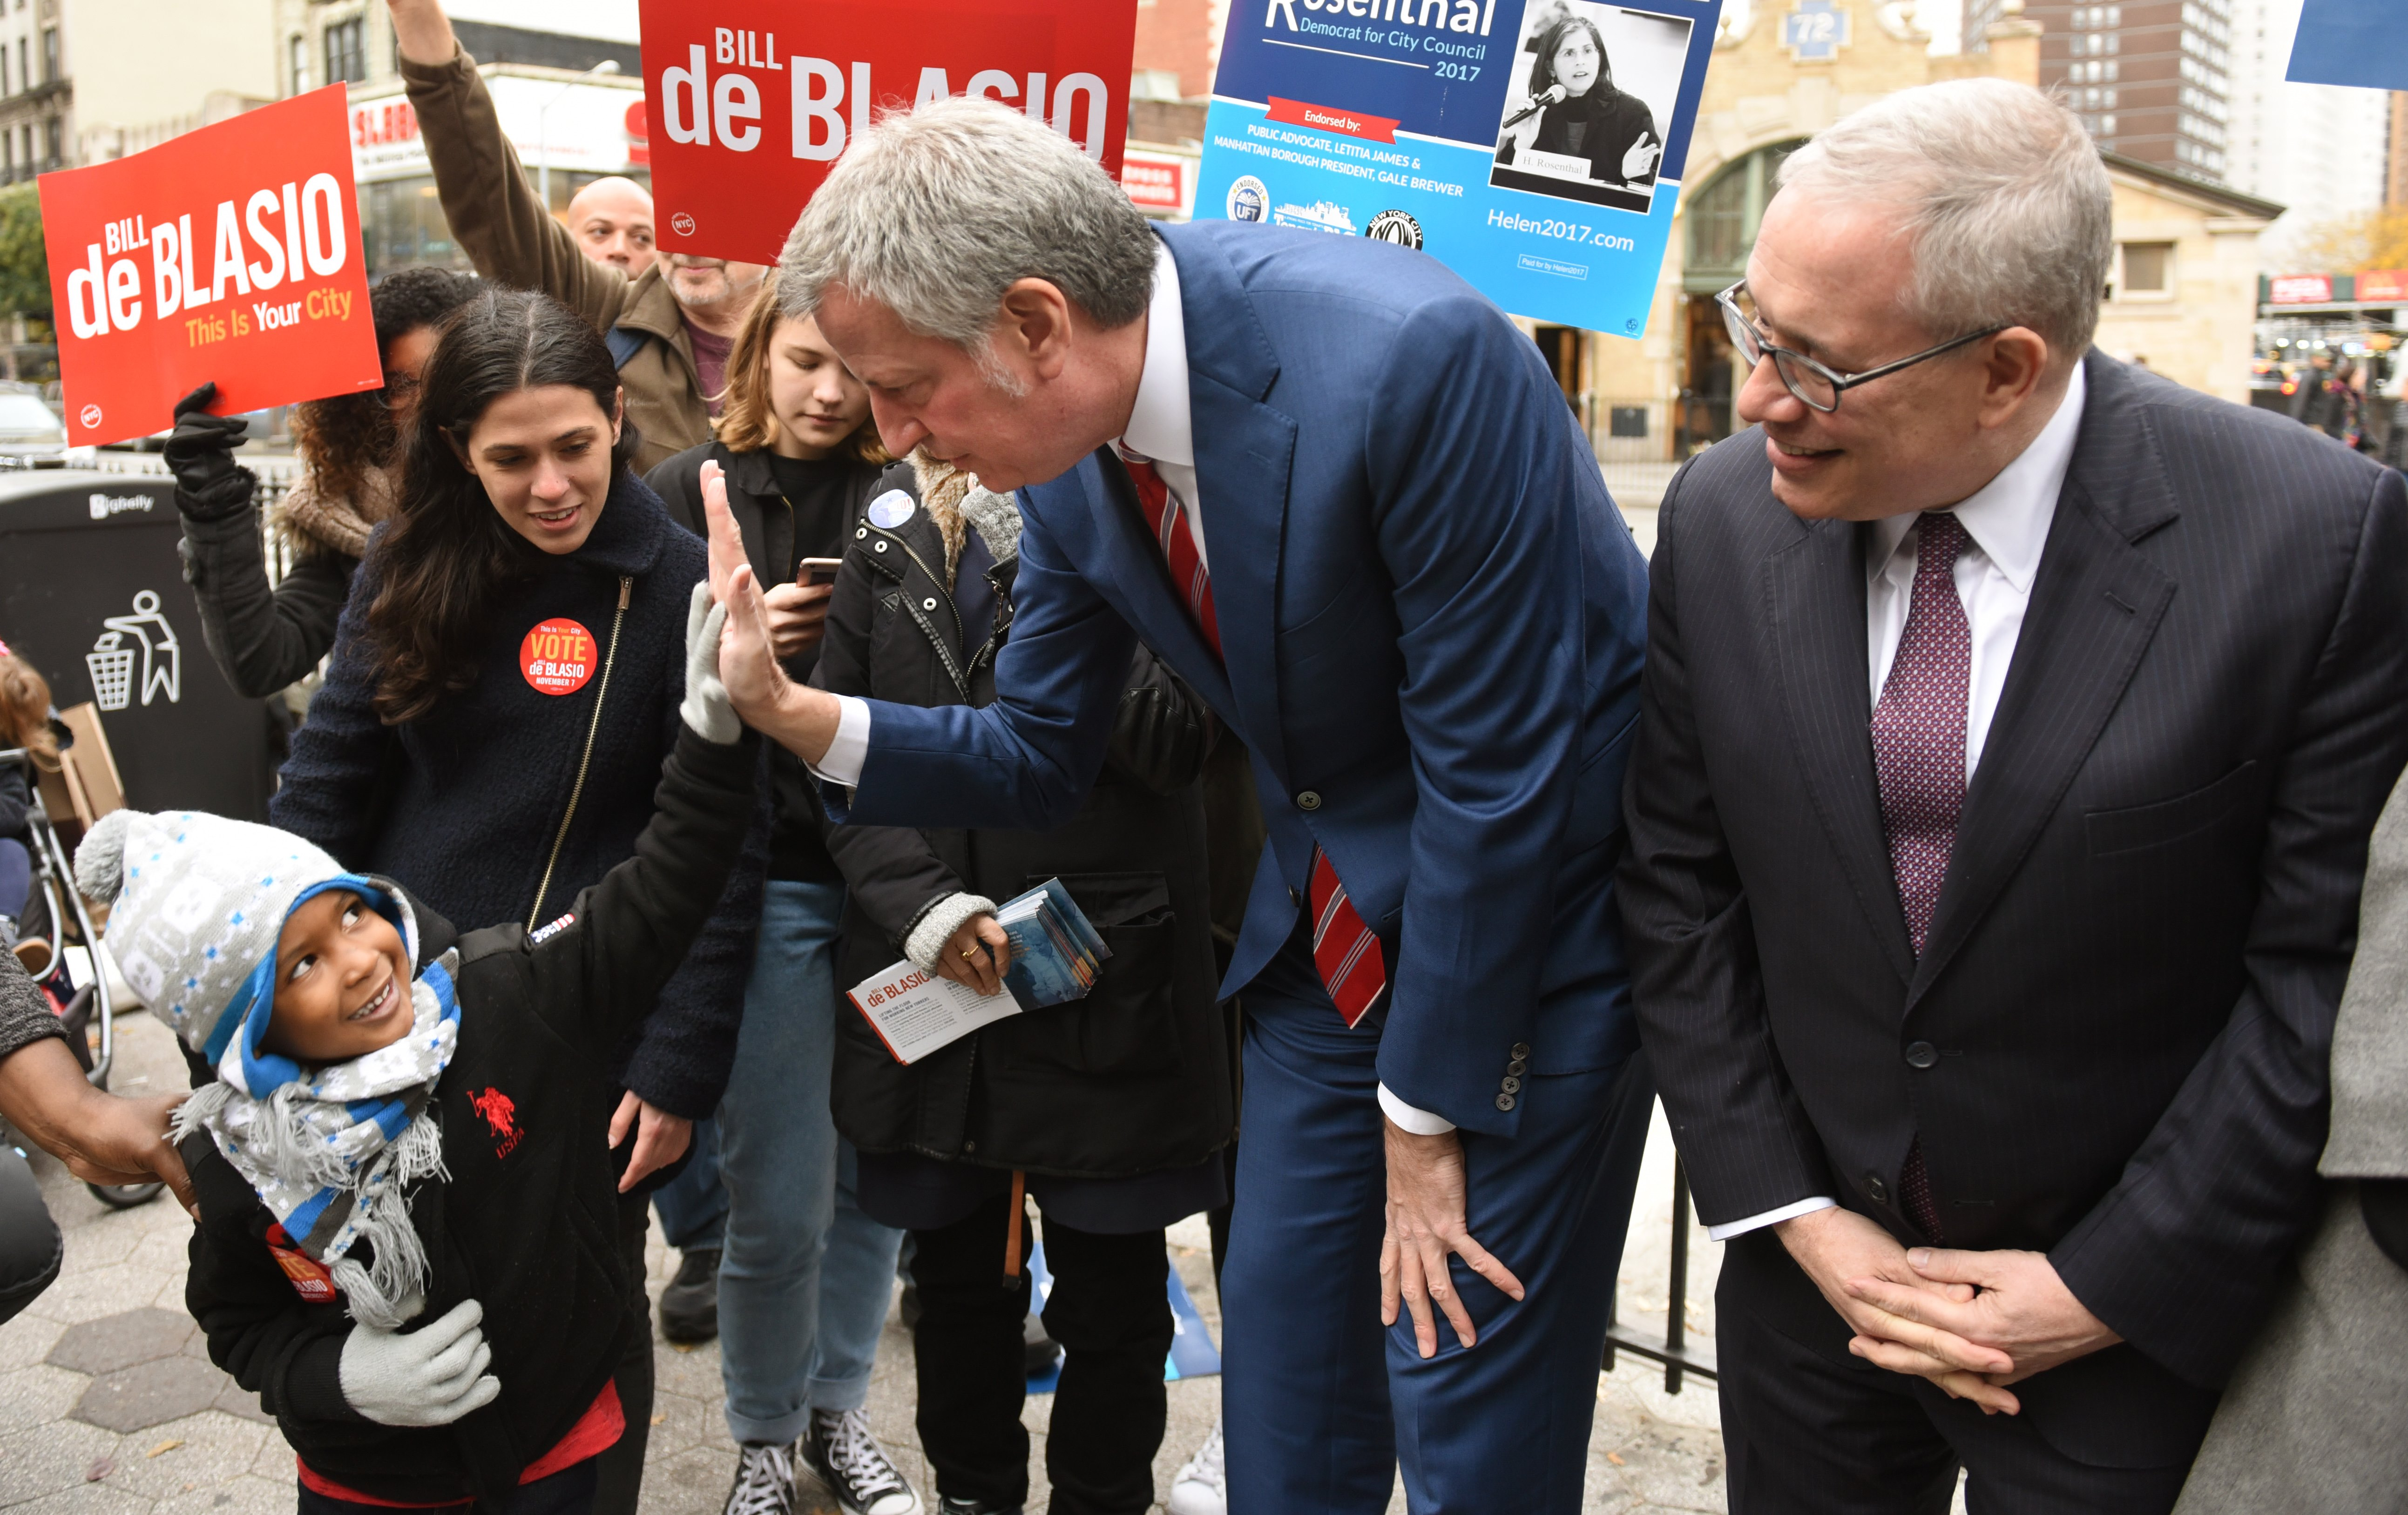 New York City Mayor Bill de Blasio greets people in New York on Nov. 7, 2017.